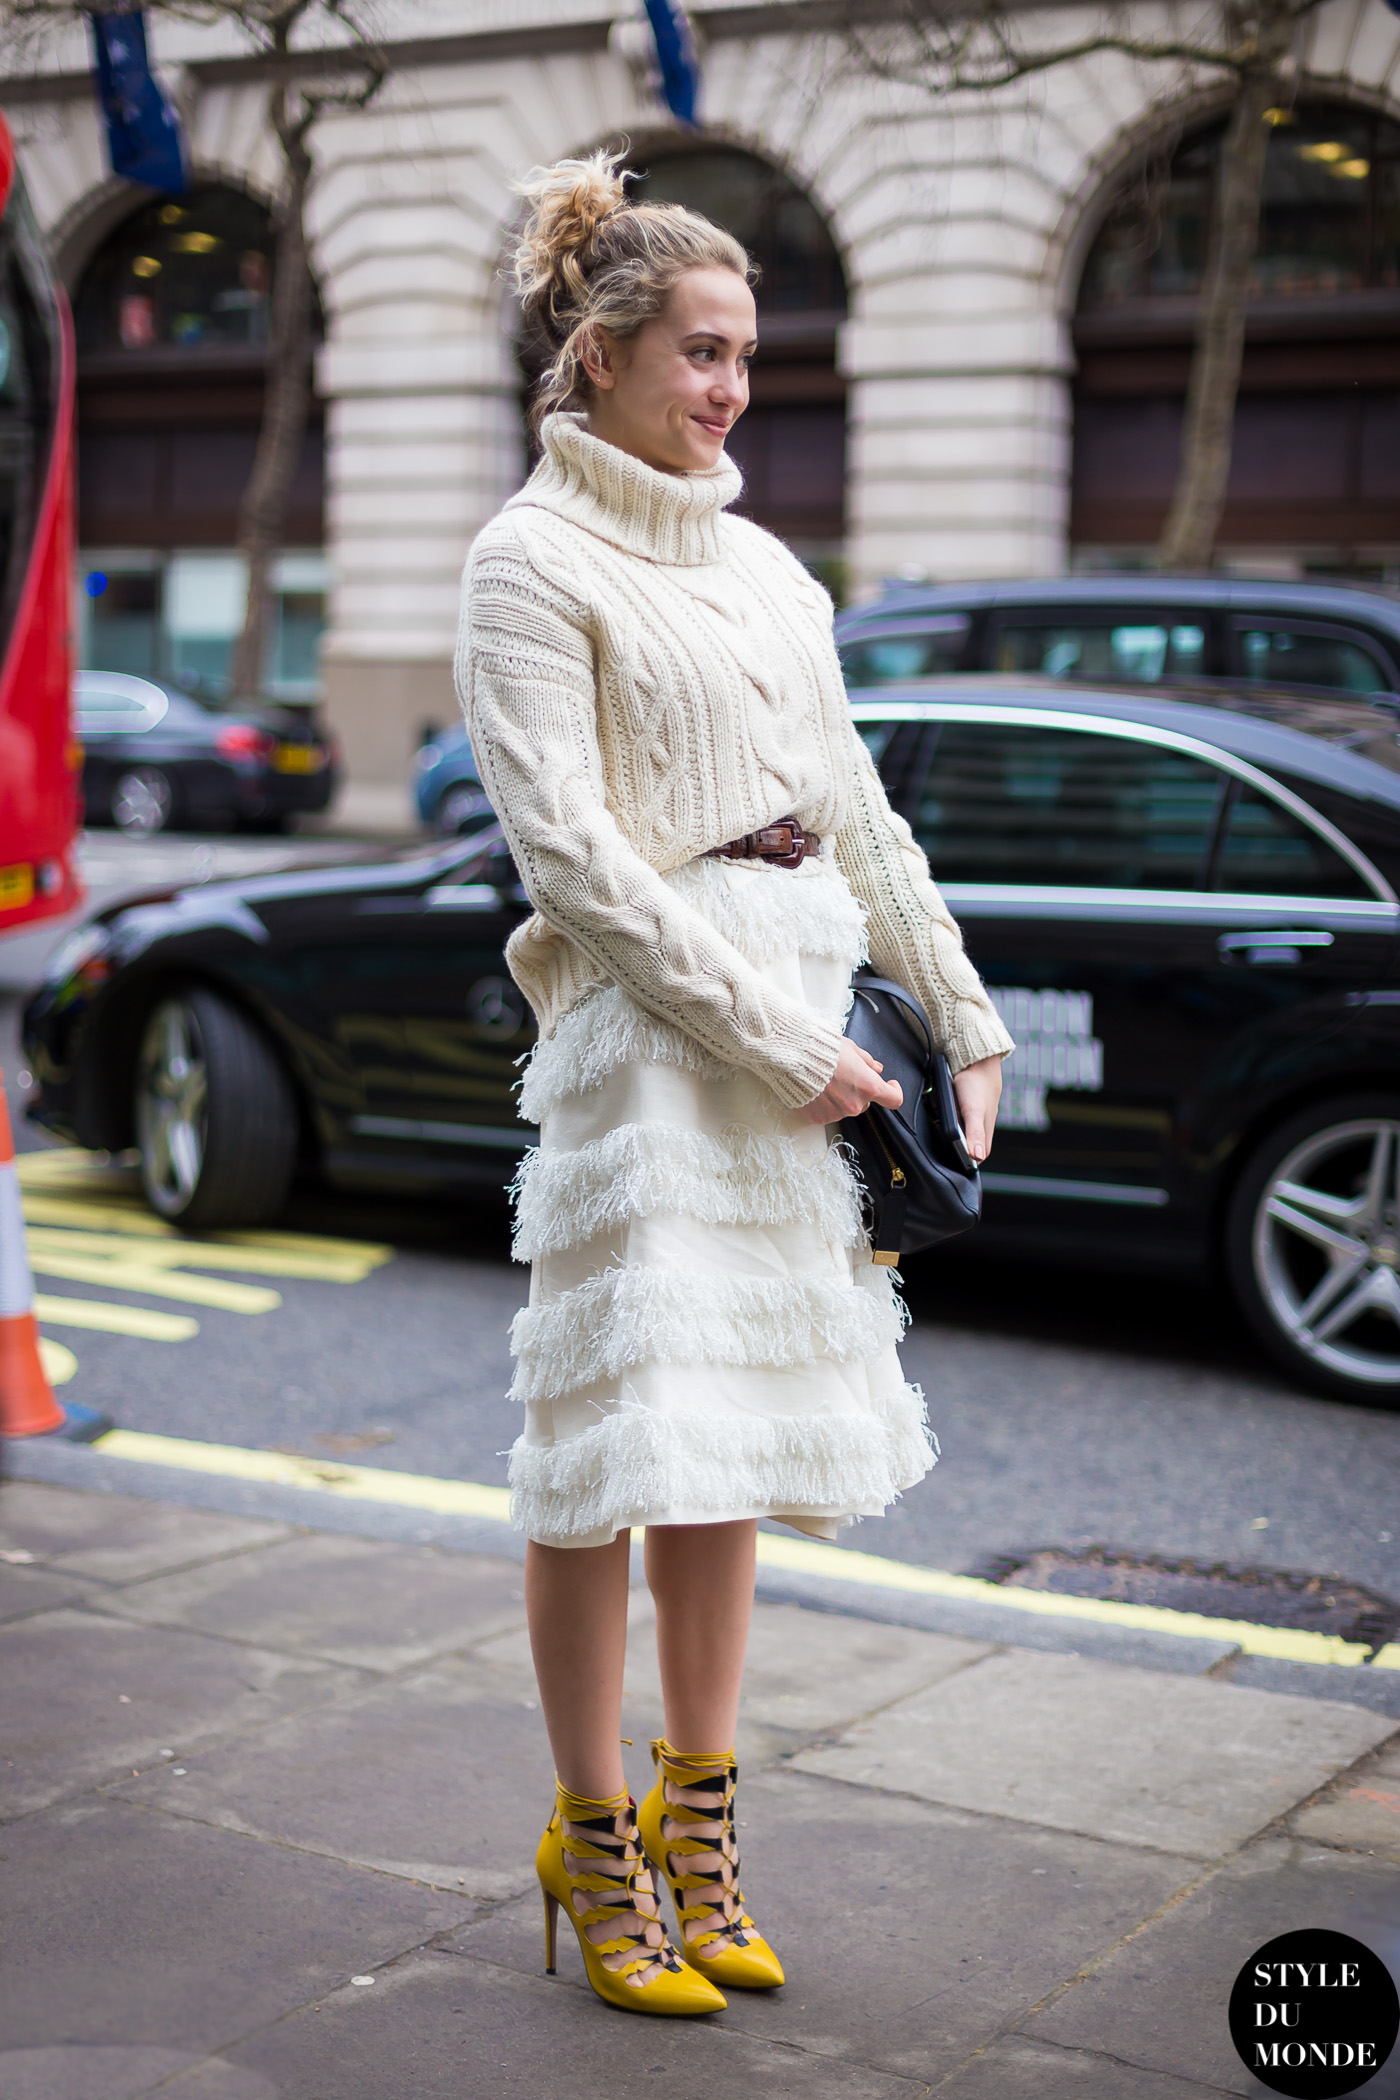 London Fashion Week Fw 2014 Street Style Laurel Pantin Style Du Monde Street Style Street